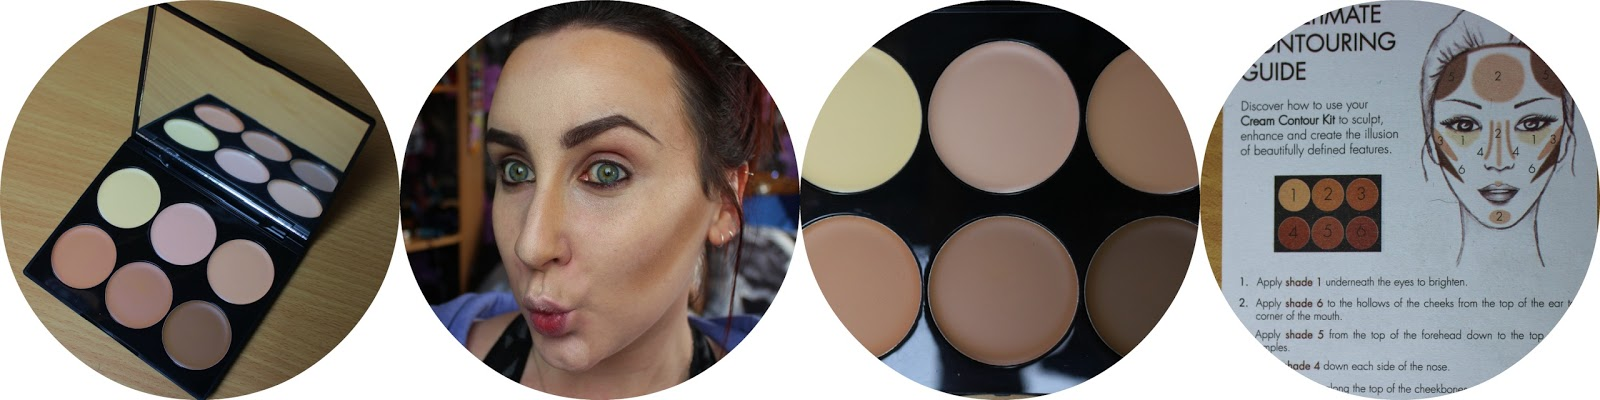 How to contour with the Sleek Cream Contour Kit